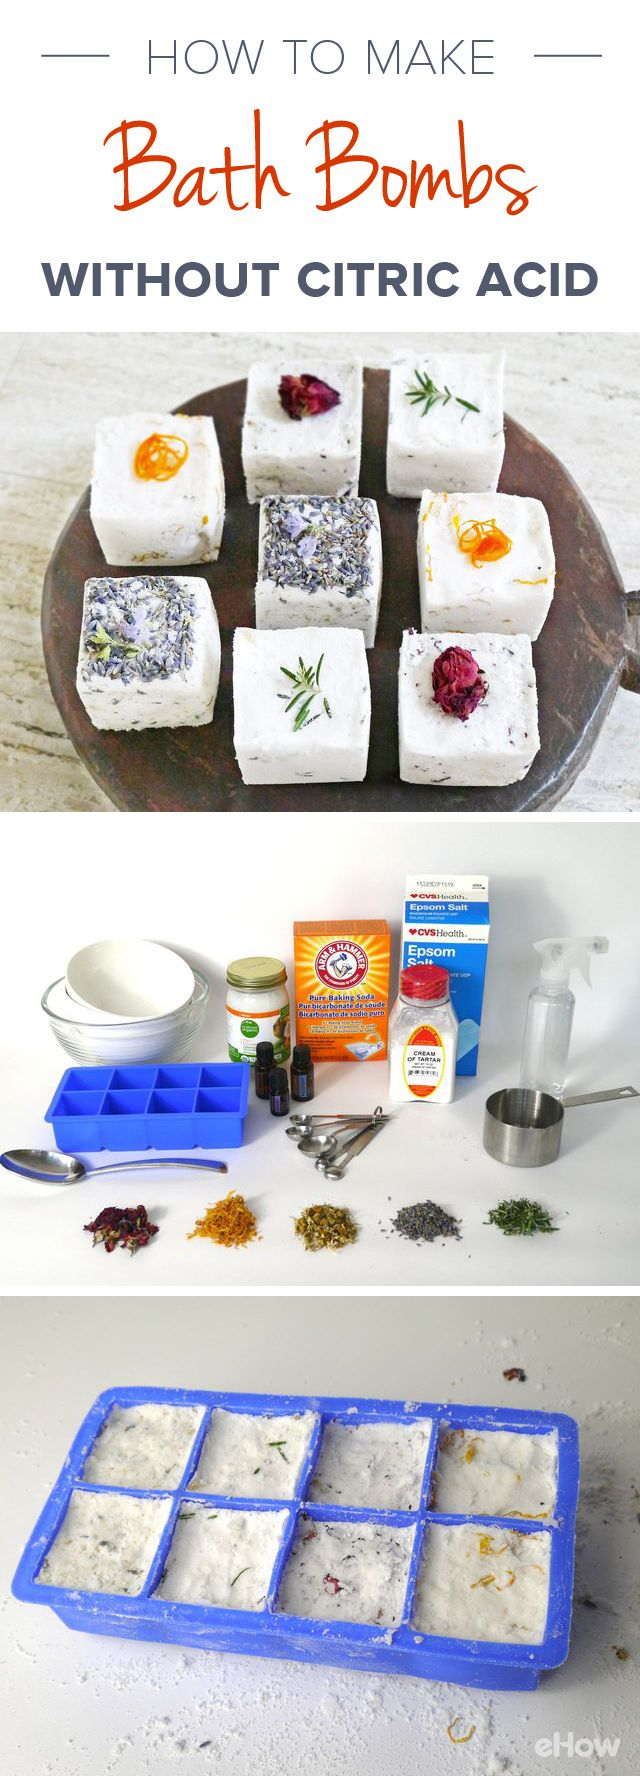 Bath bombs leave your bathwater cleansing & soothing. However, bath bombs can be...